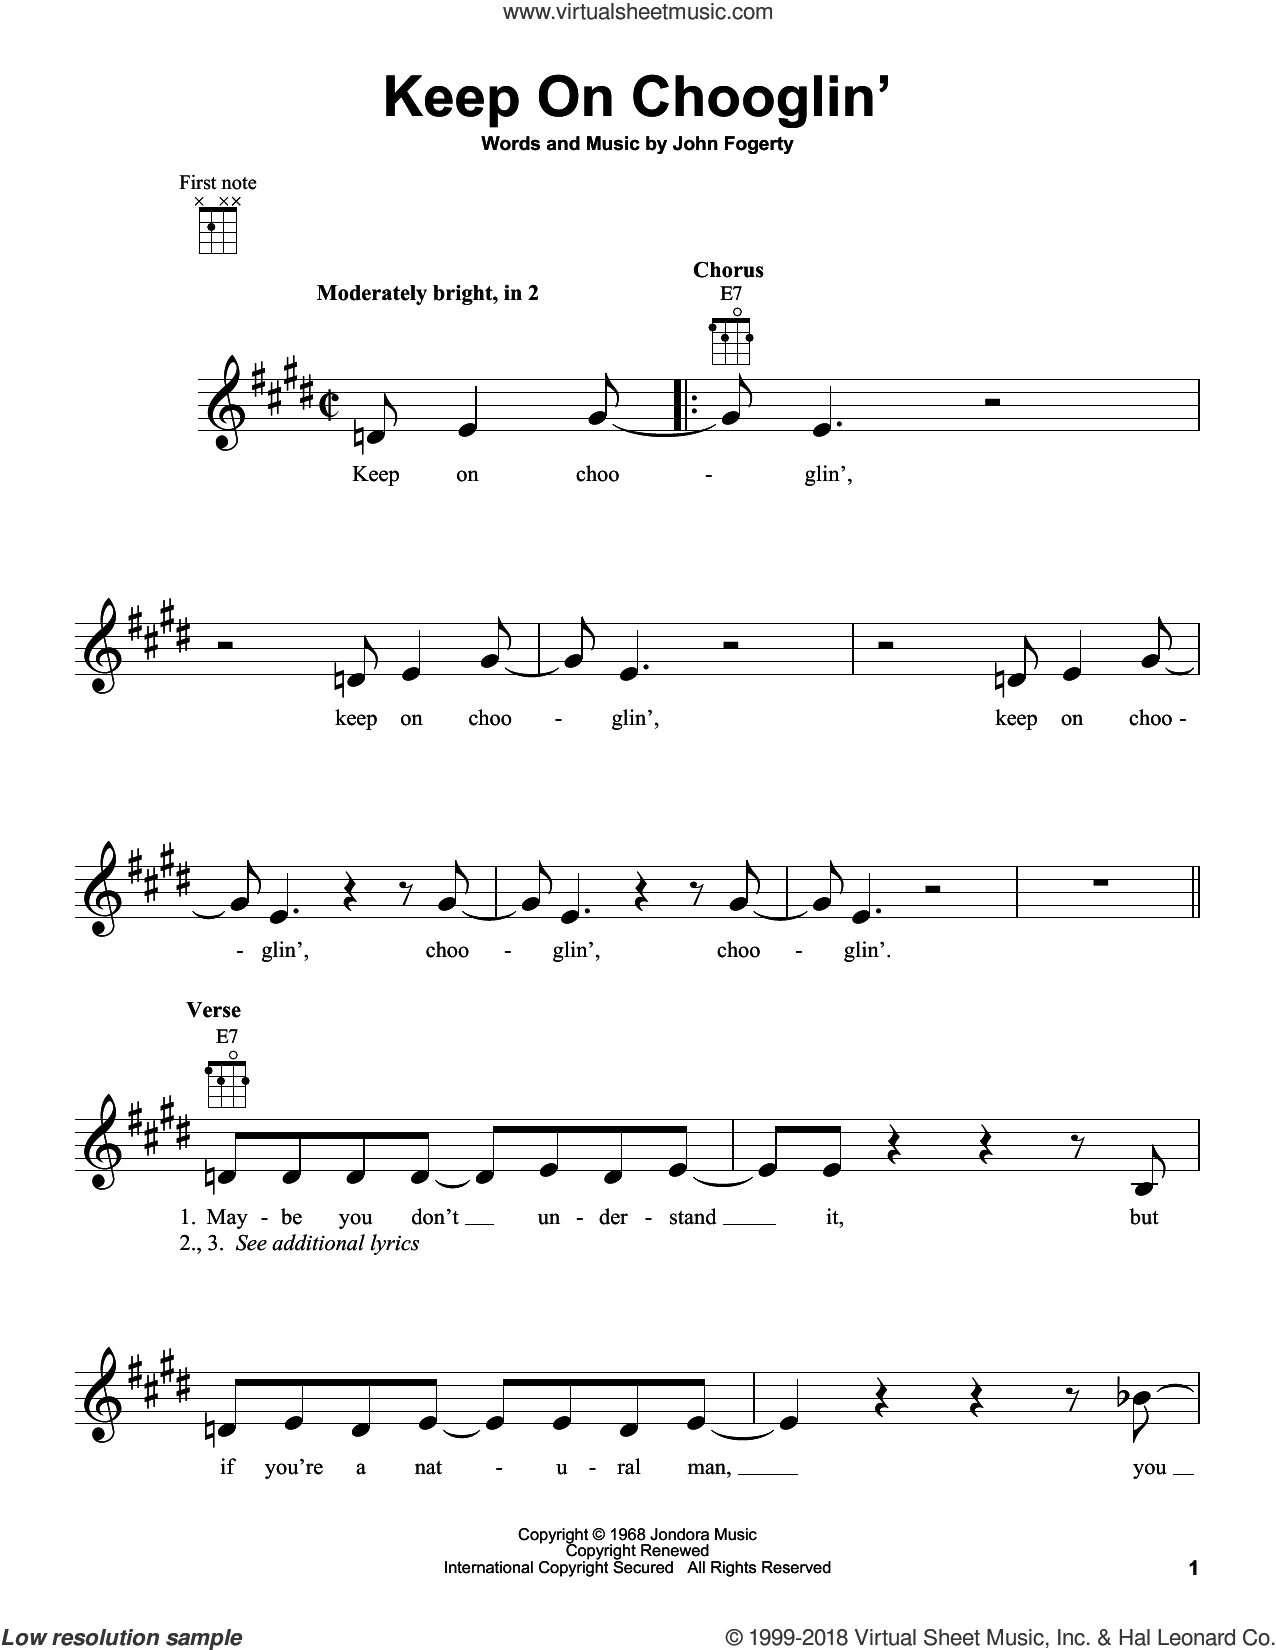 Keep On Chooglin' sheet music for ukulele by John Fogerty and Creedence Clearwater Revival. Score Image Preview.